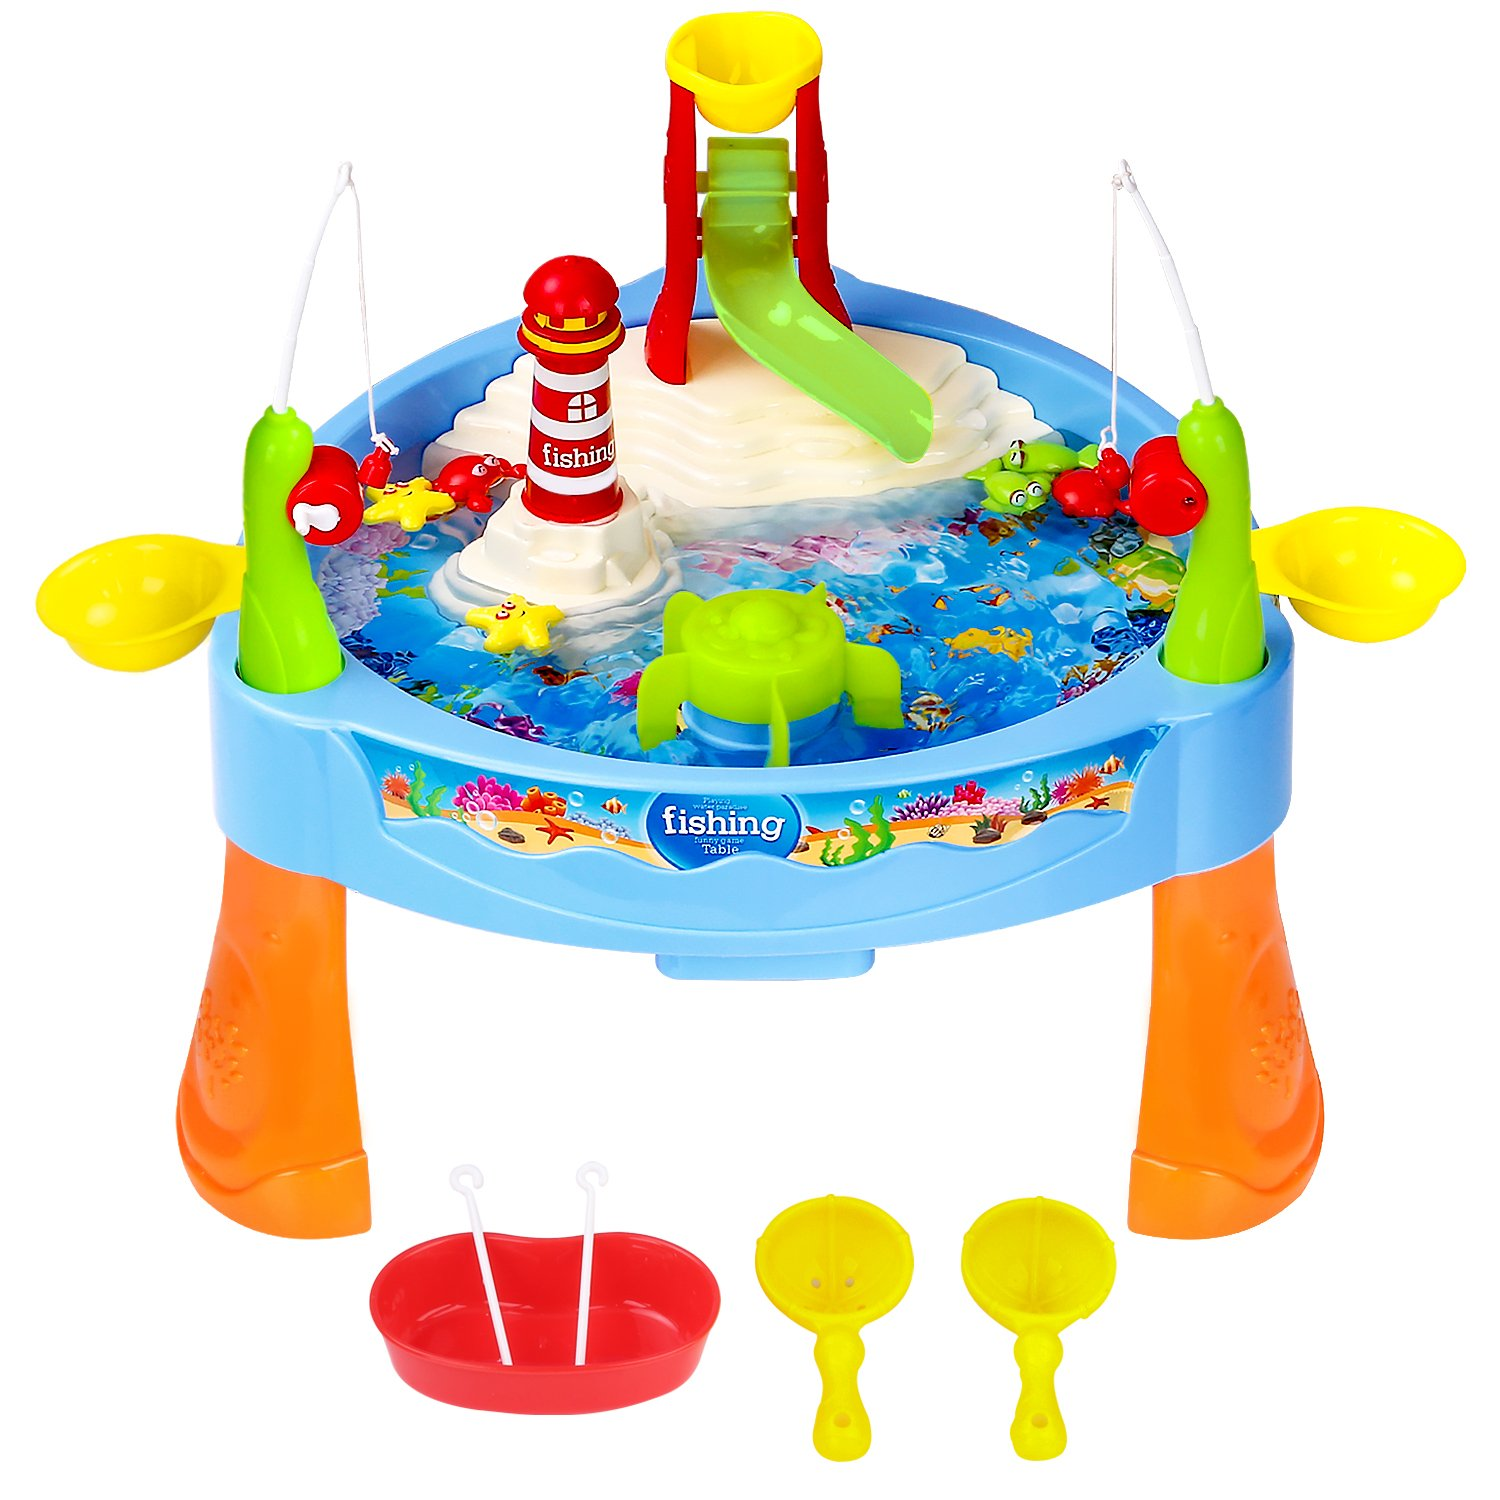 Zooawa Mini Fishing Game Set 11.81 x 6.7 Inch, Electric Magnetic Rod and Reel Toy Water Playing Fun Paradise [25 Pcs] with Music and Light for Kids and Toddlers, Colorful